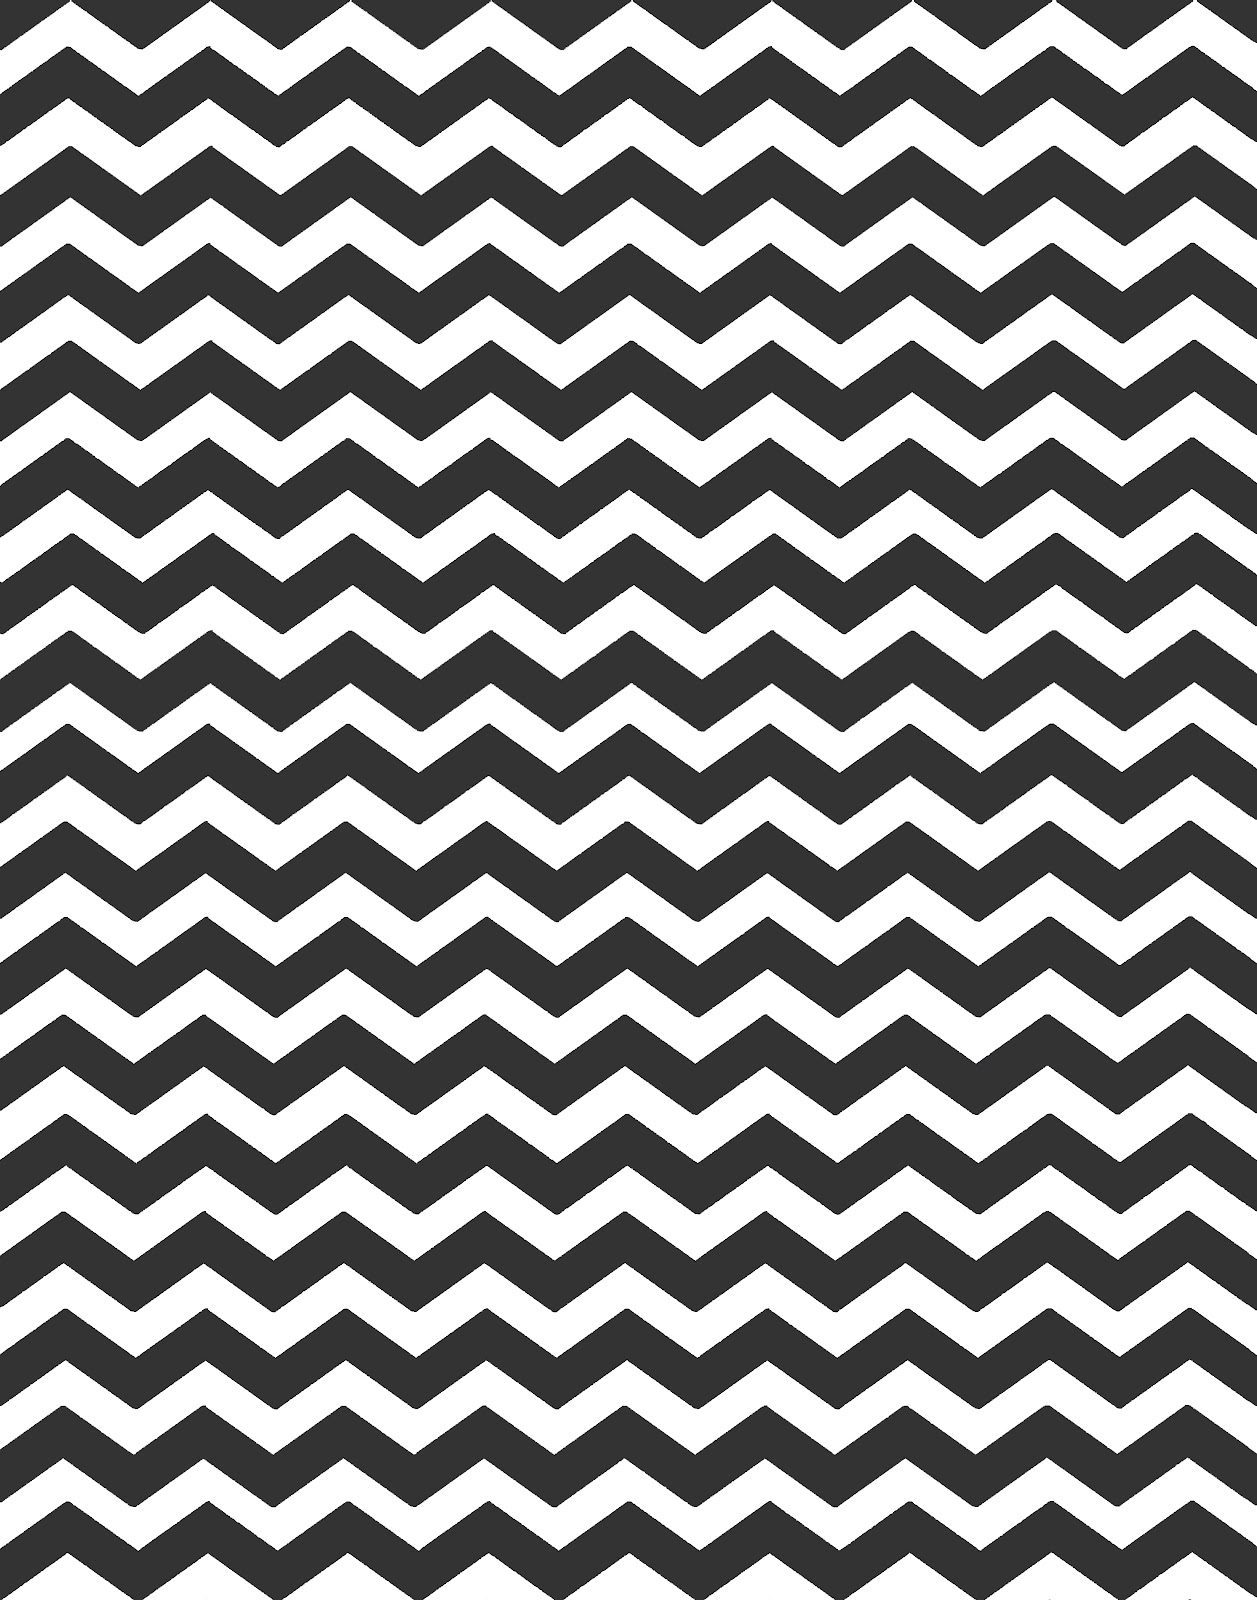 Remarkable image intended for printable chevron pattern